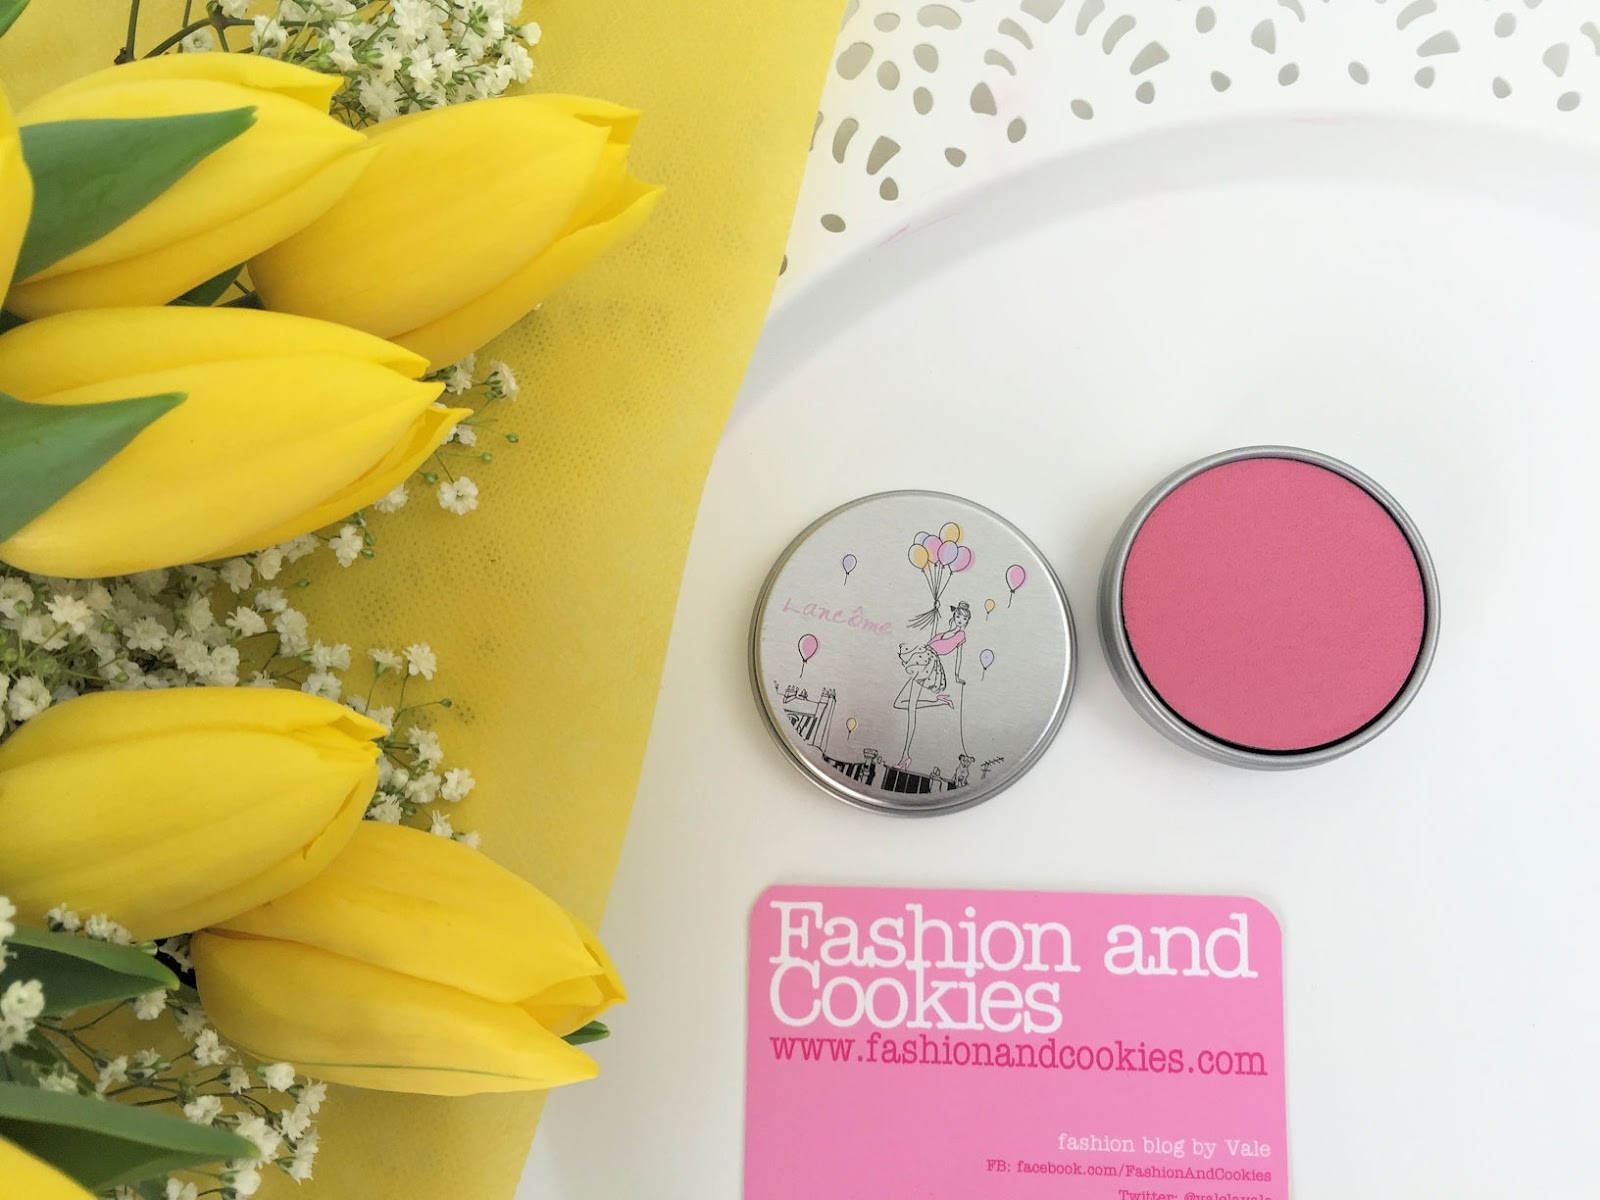 Lancôme makeup collection for Spring 2016 My Parisian Pastels blush on Fashion and Cookies beauty blog, beauty blogger